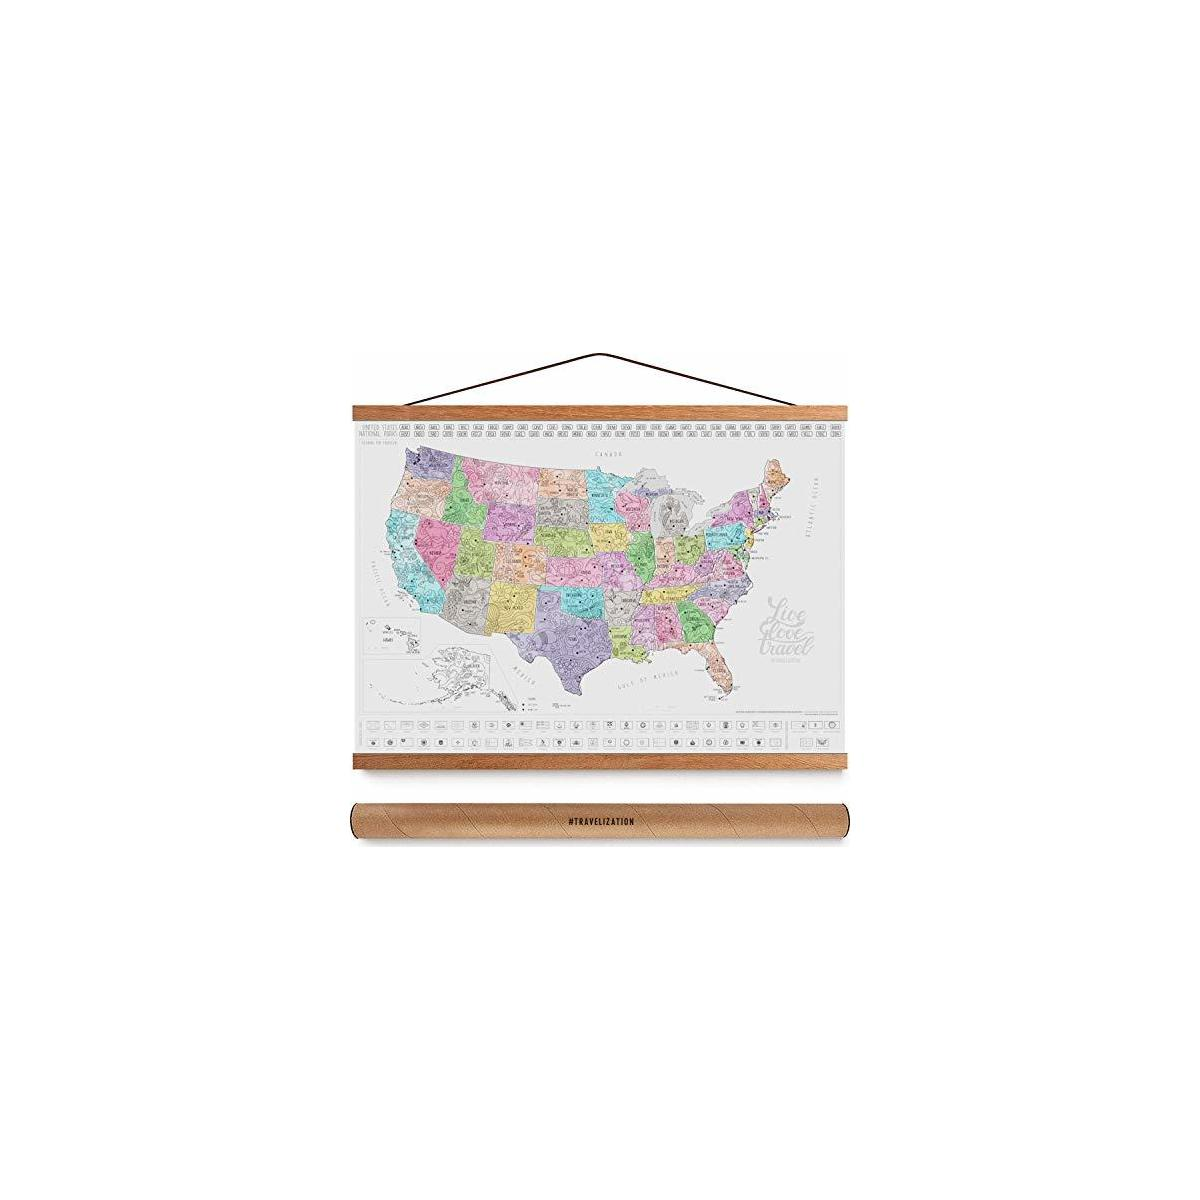 """37"""" Wide Magnetic Poster Hanger Frame - Wall Hanging Wooden Frame for Posters, Prints, Photos, and Artwork - Extra Strong Magnets & Full Hanging Kit - Frame for Scratch Off Map 24x36"""